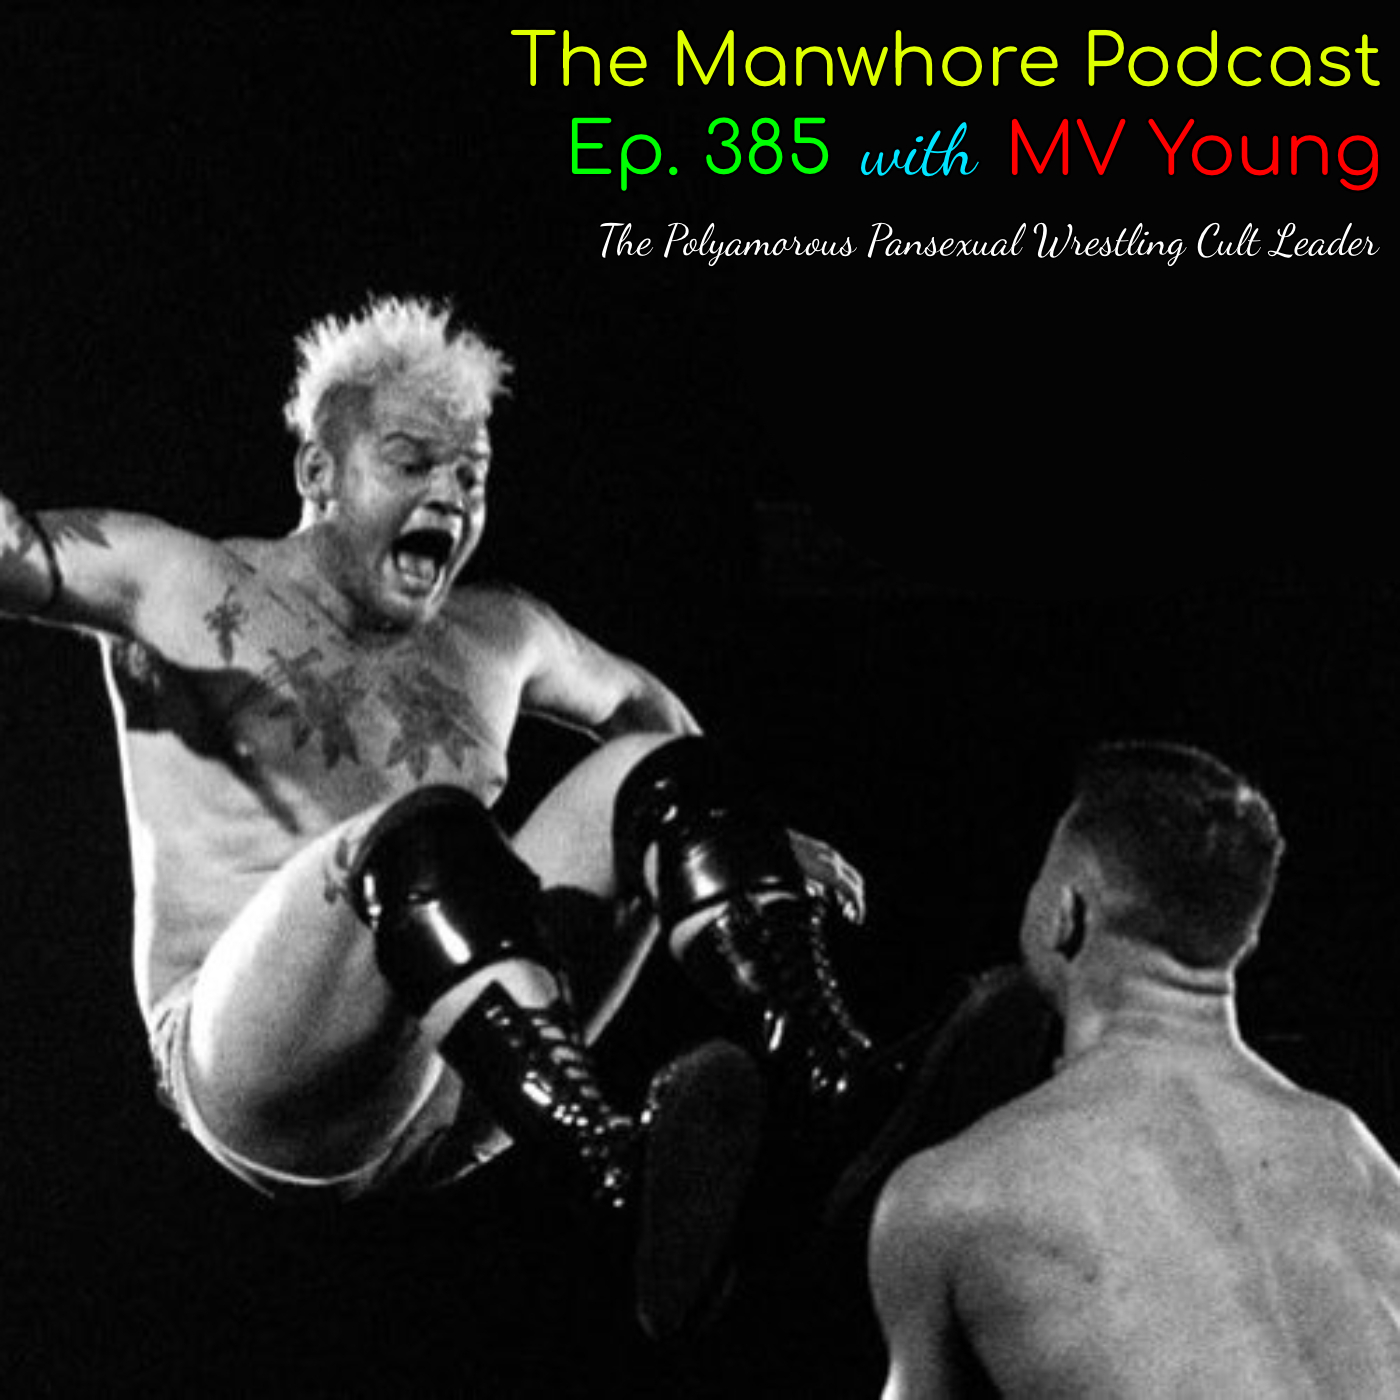 The Manwhore Podcast: A Sex-Positive Quest - Ep. 385: The Polyamorous Pansexual Wrestling Cult Leader MV Young